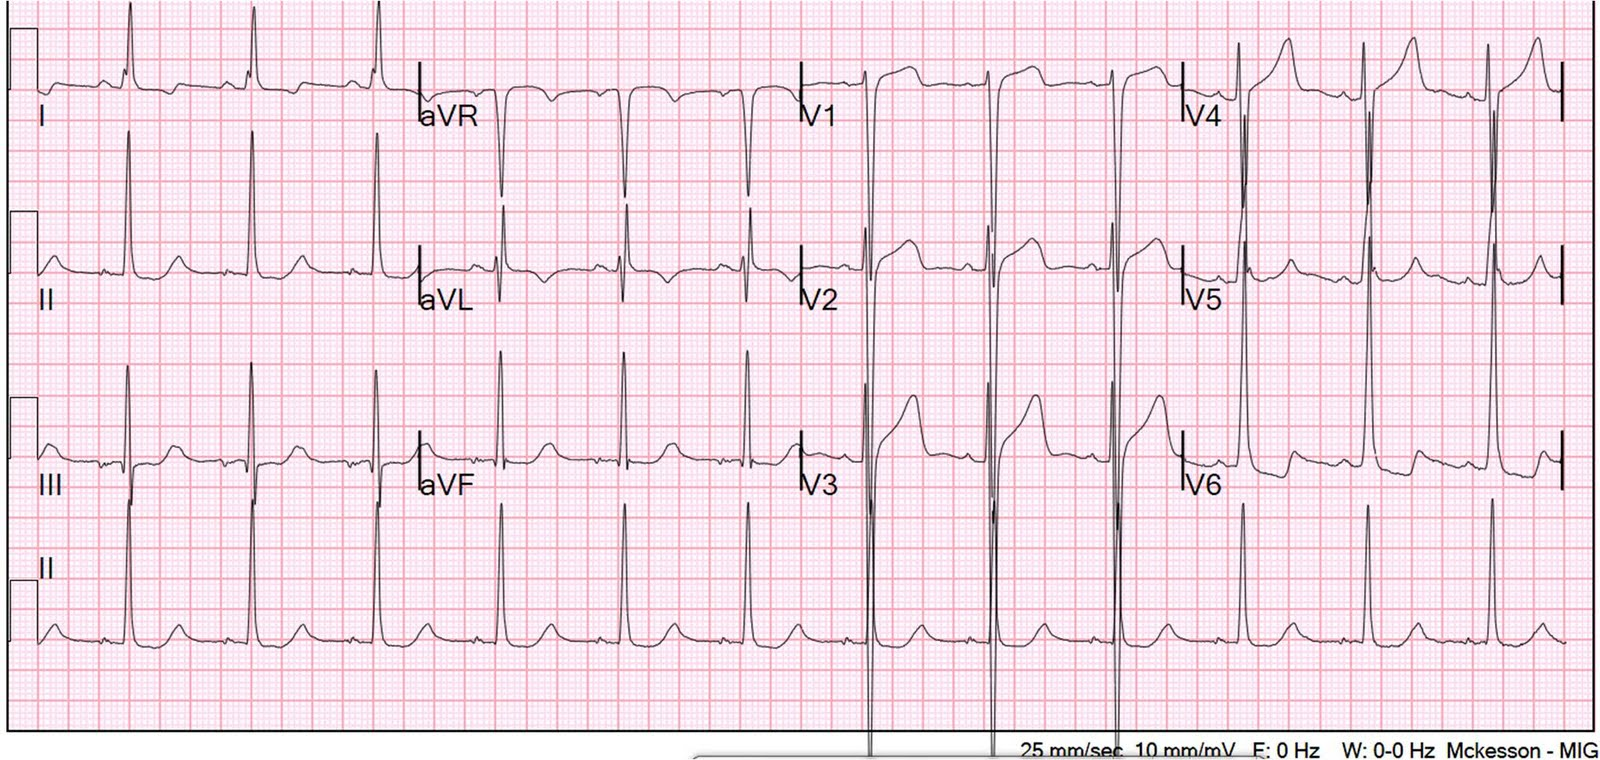 Dr. Smith's ECG Blog: Is this Acute Ischemia? More on LVH.